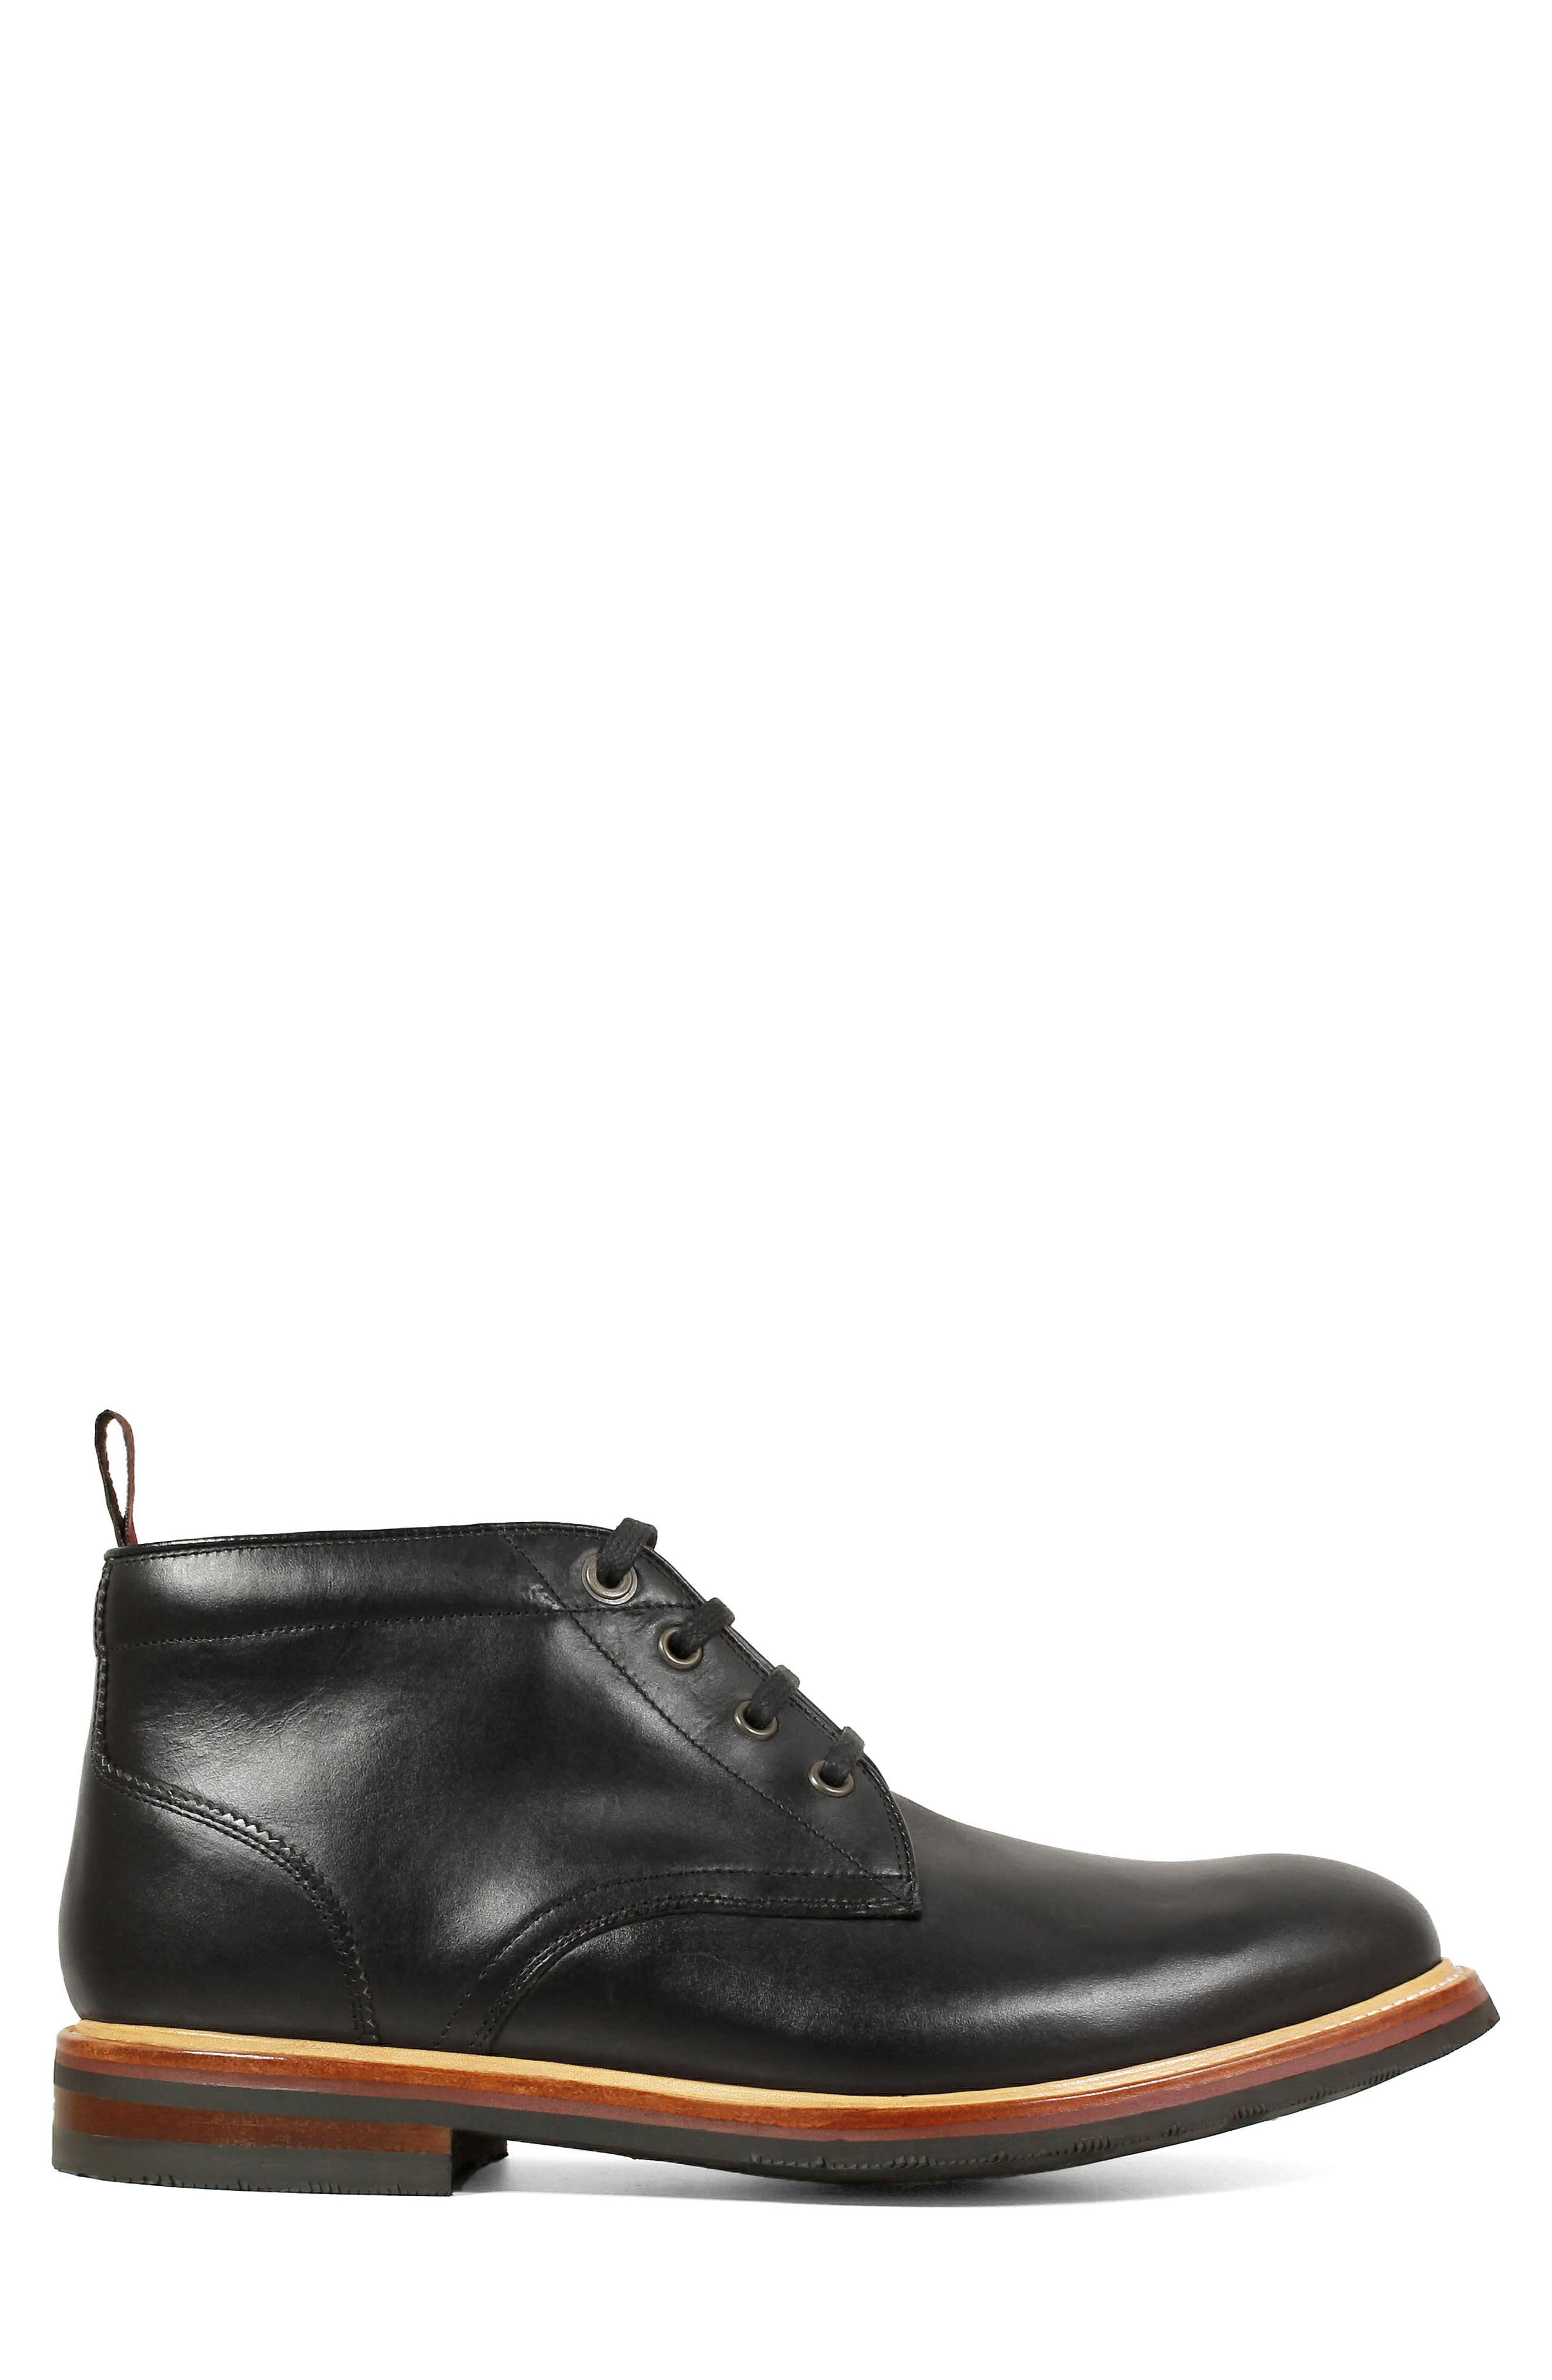 FLORSHEIM, Foundry Leather Boot, Alternate thumbnail 3, color, BLACK LEATHER